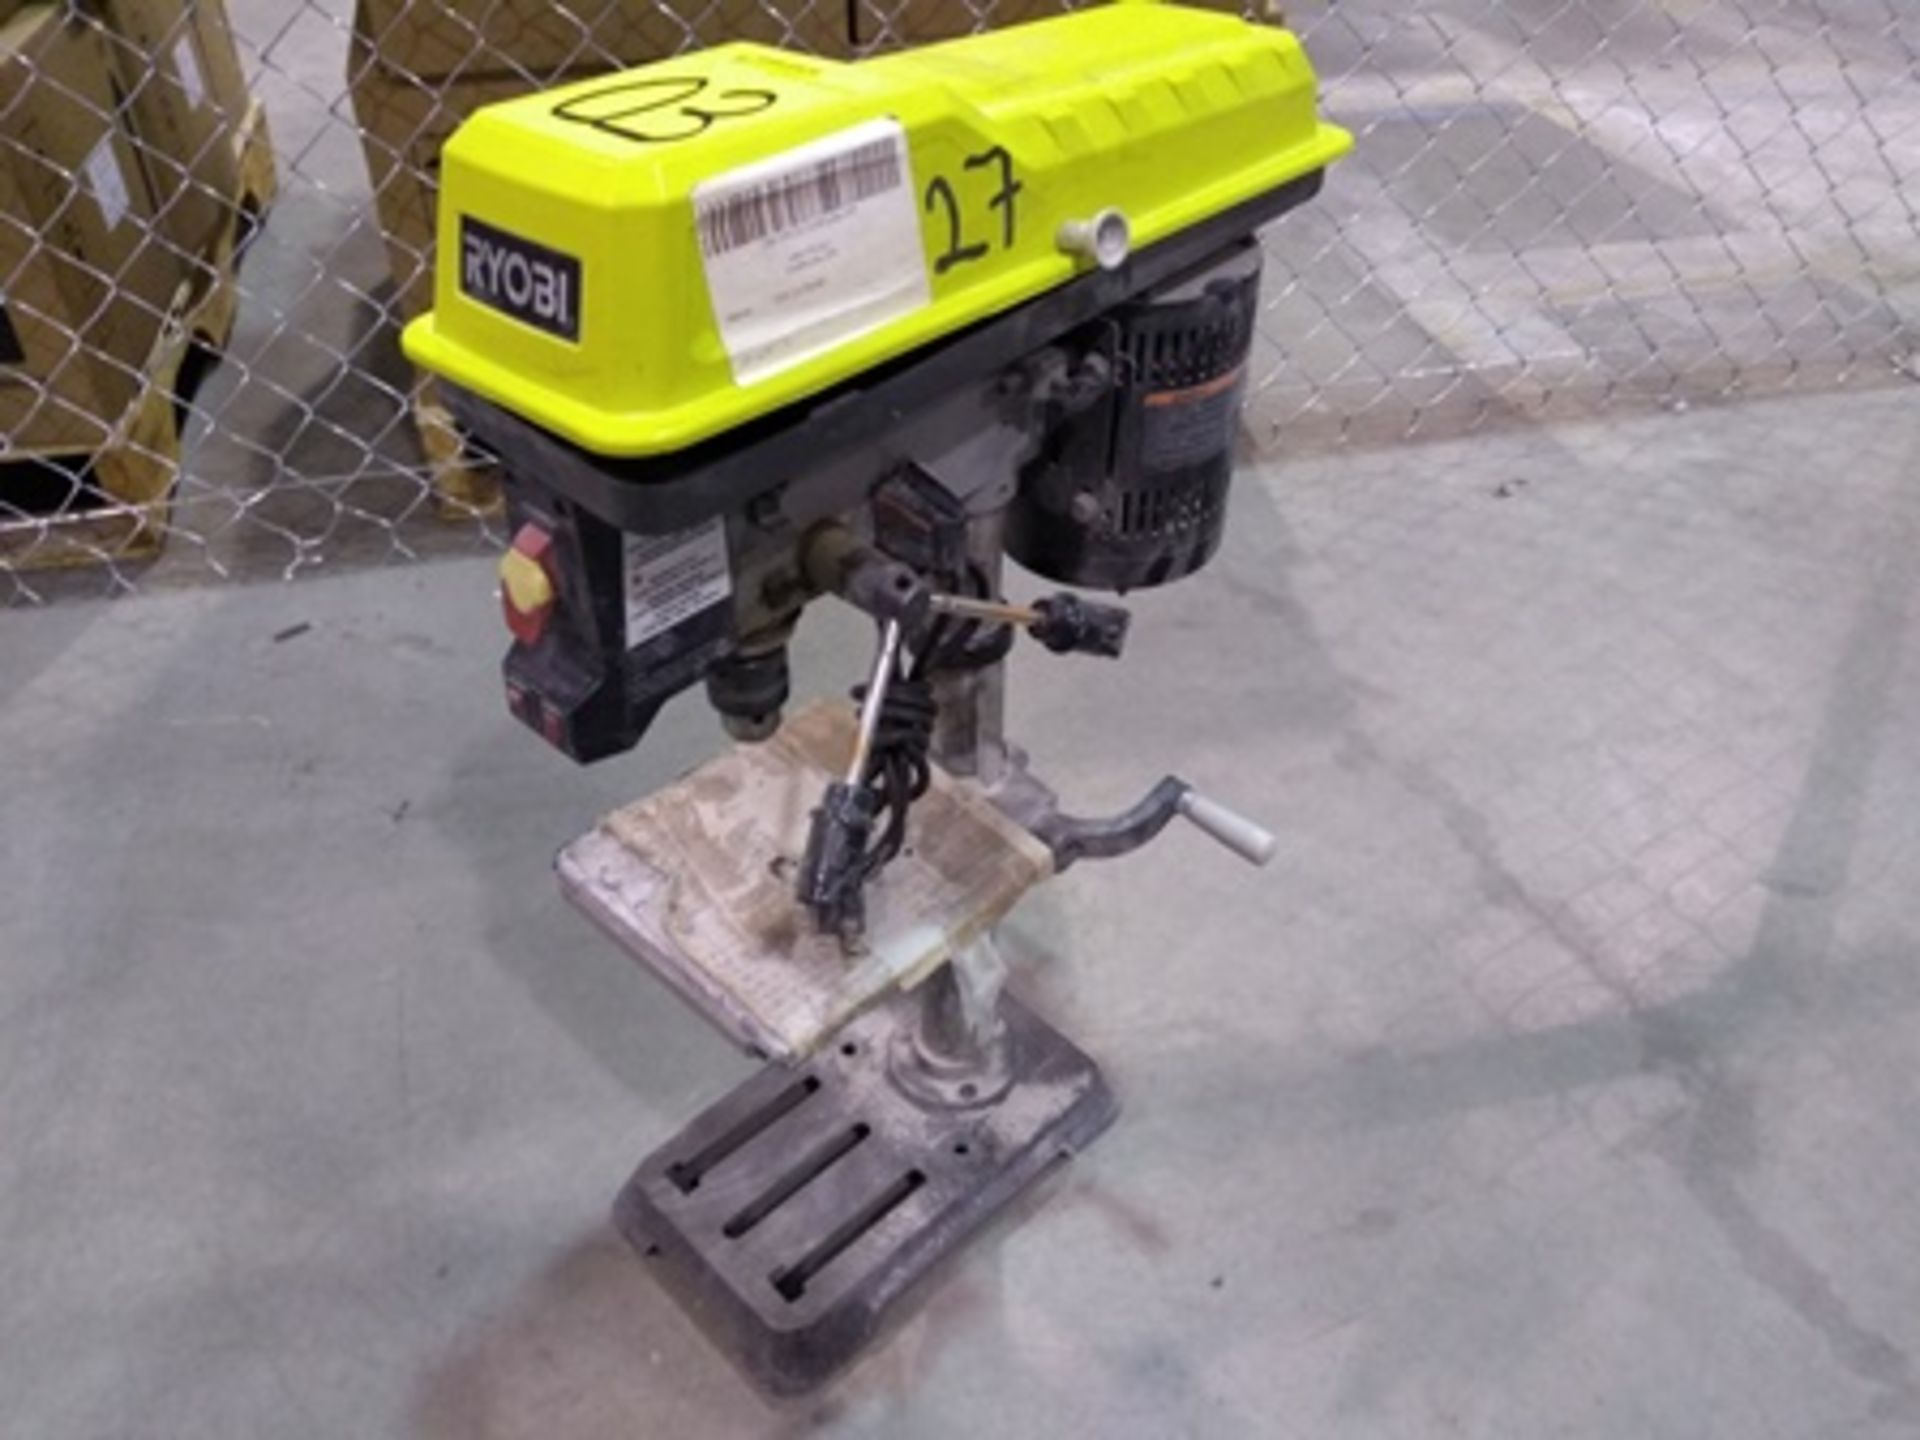 Lot 3 - Ryobi column drill (chuck and lasser alignment system included), 1/2 hp engine.